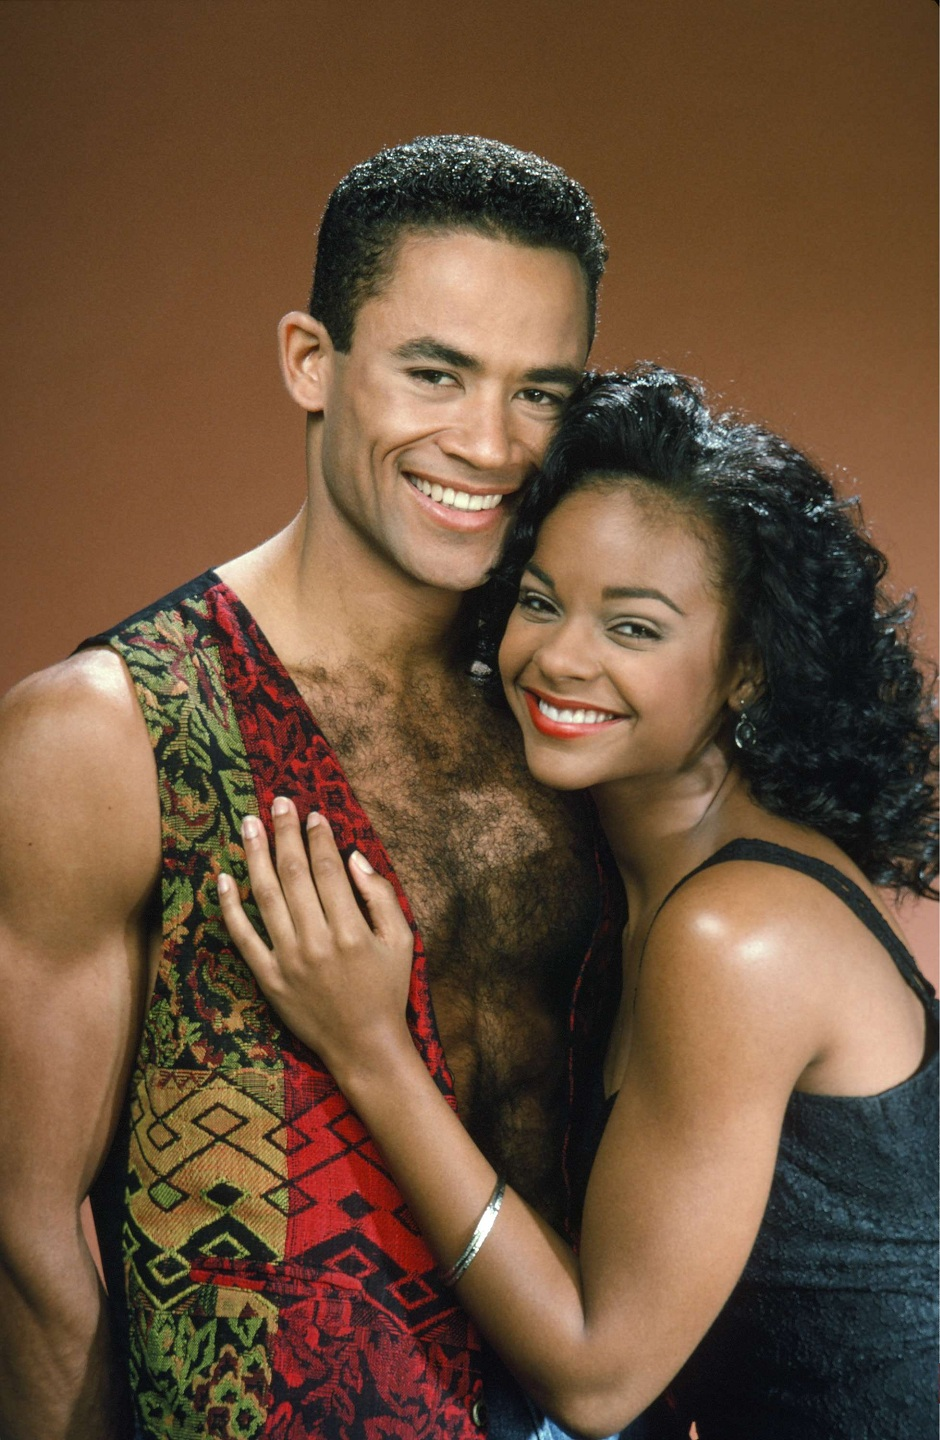 Lark Voorhies Pic Appreciation Thread - Page 12